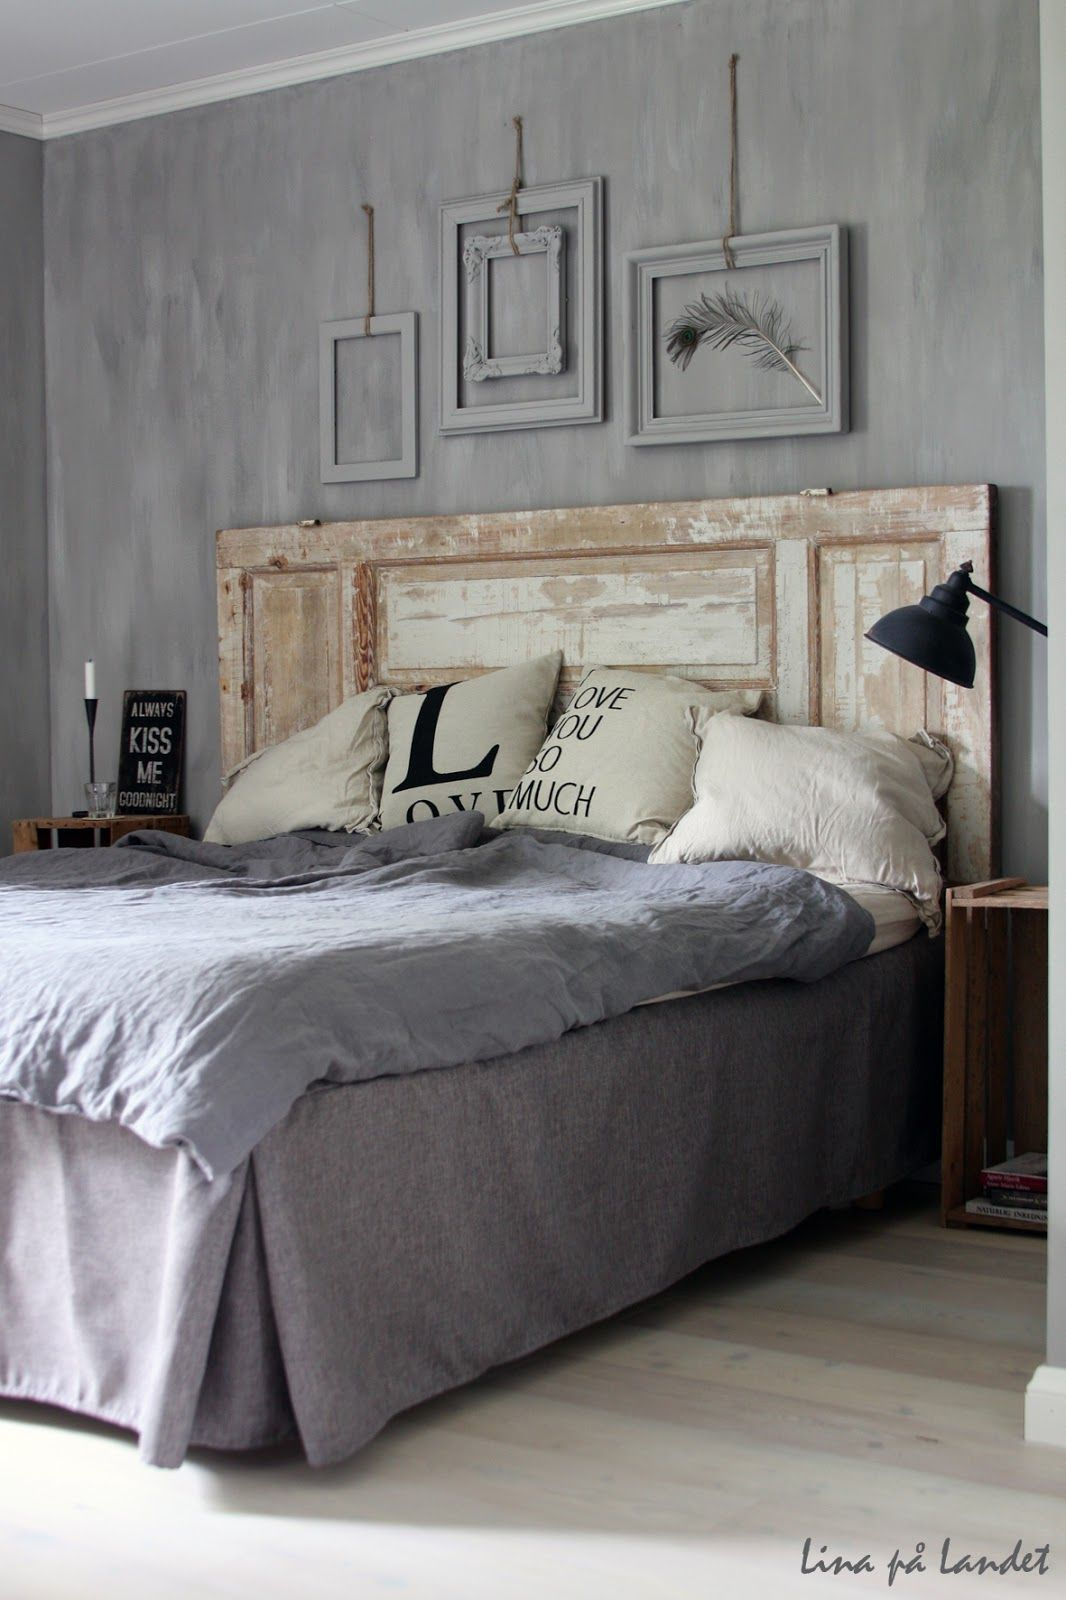 ancienne porte en t te de lit http www m. Black Bedroom Furniture Sets. Home Design Ideas